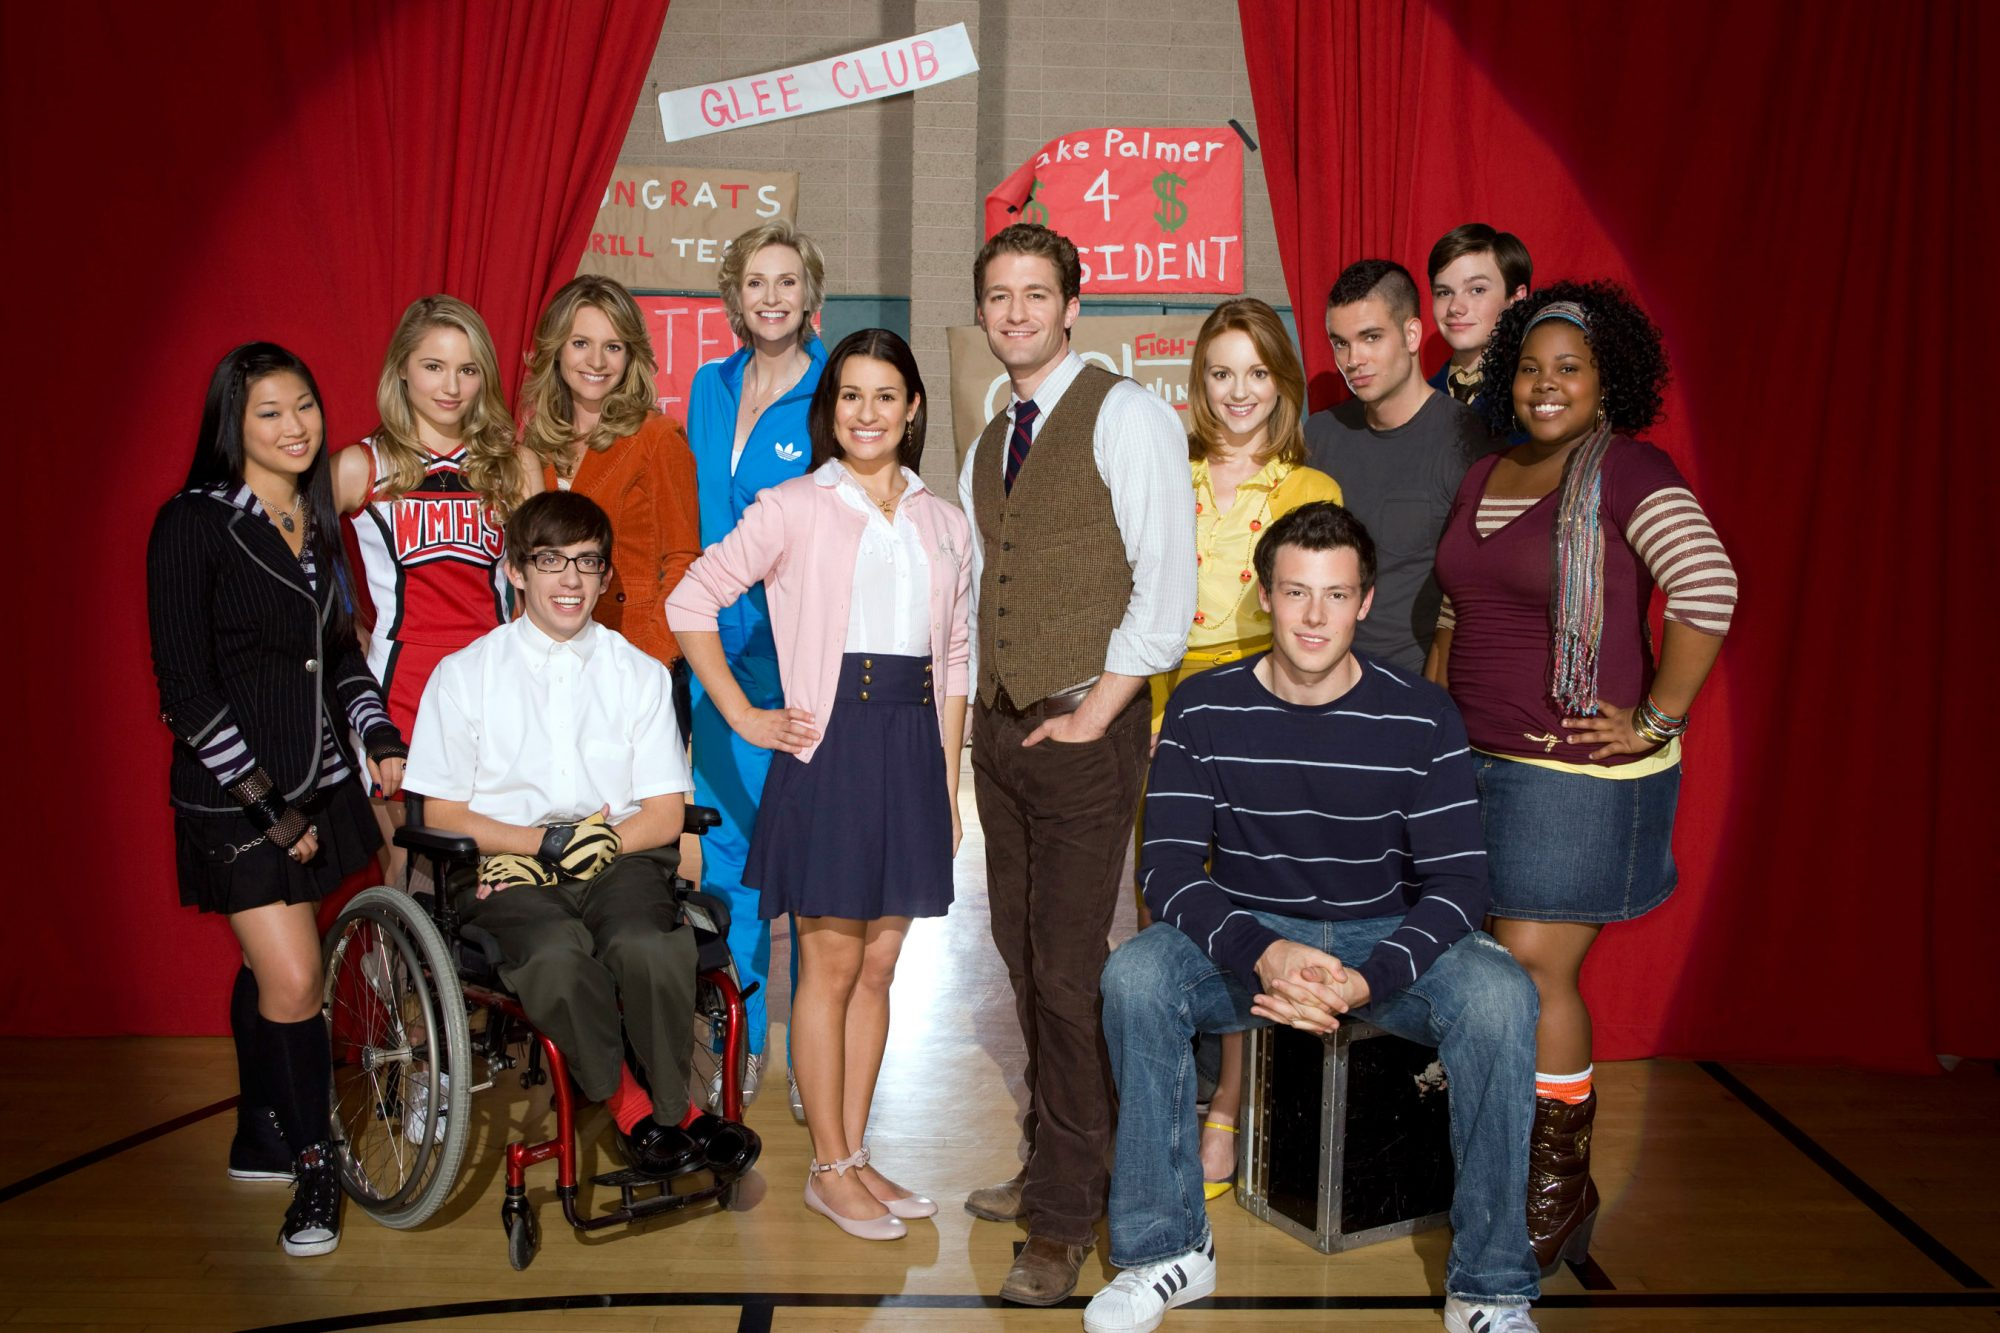 GLEE, (back, from left): Jenna Ushkowitz, Dianna Agron, Jessalyn Gilsig, Jane Lynch, Mark Salling, C